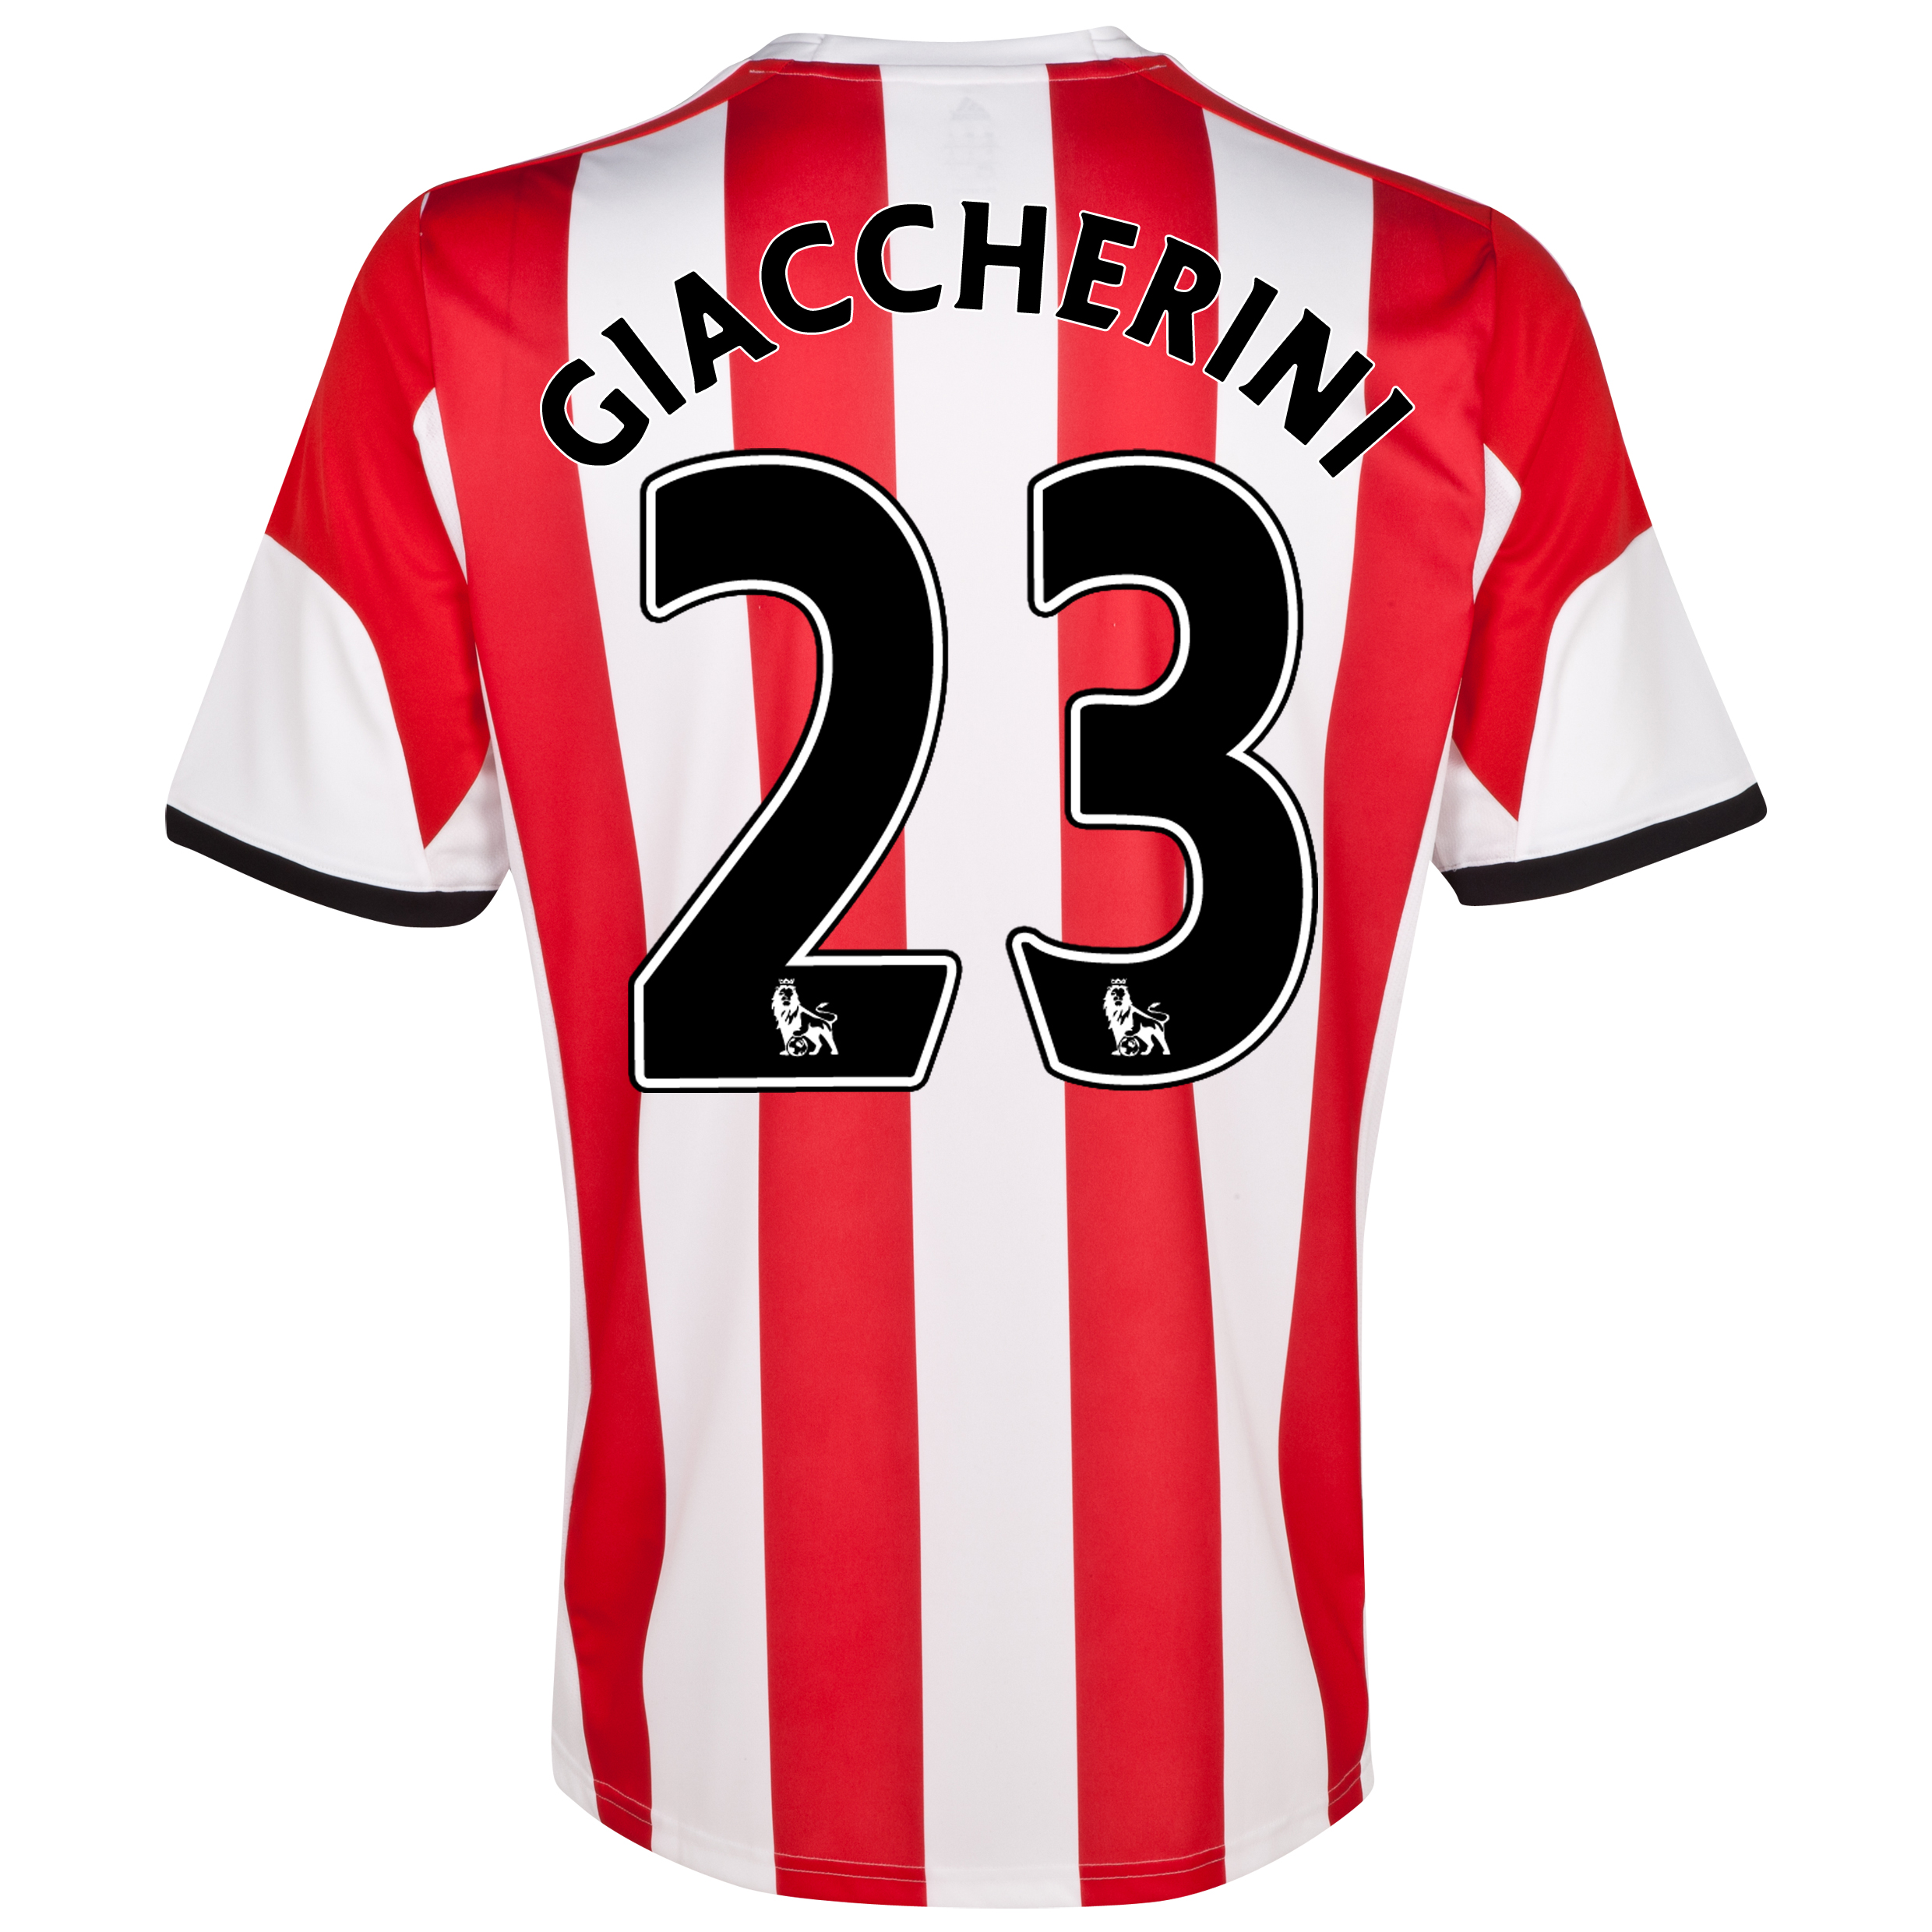 Sunderland Home Shirt 2013/14 with Giaccherini 23 printing